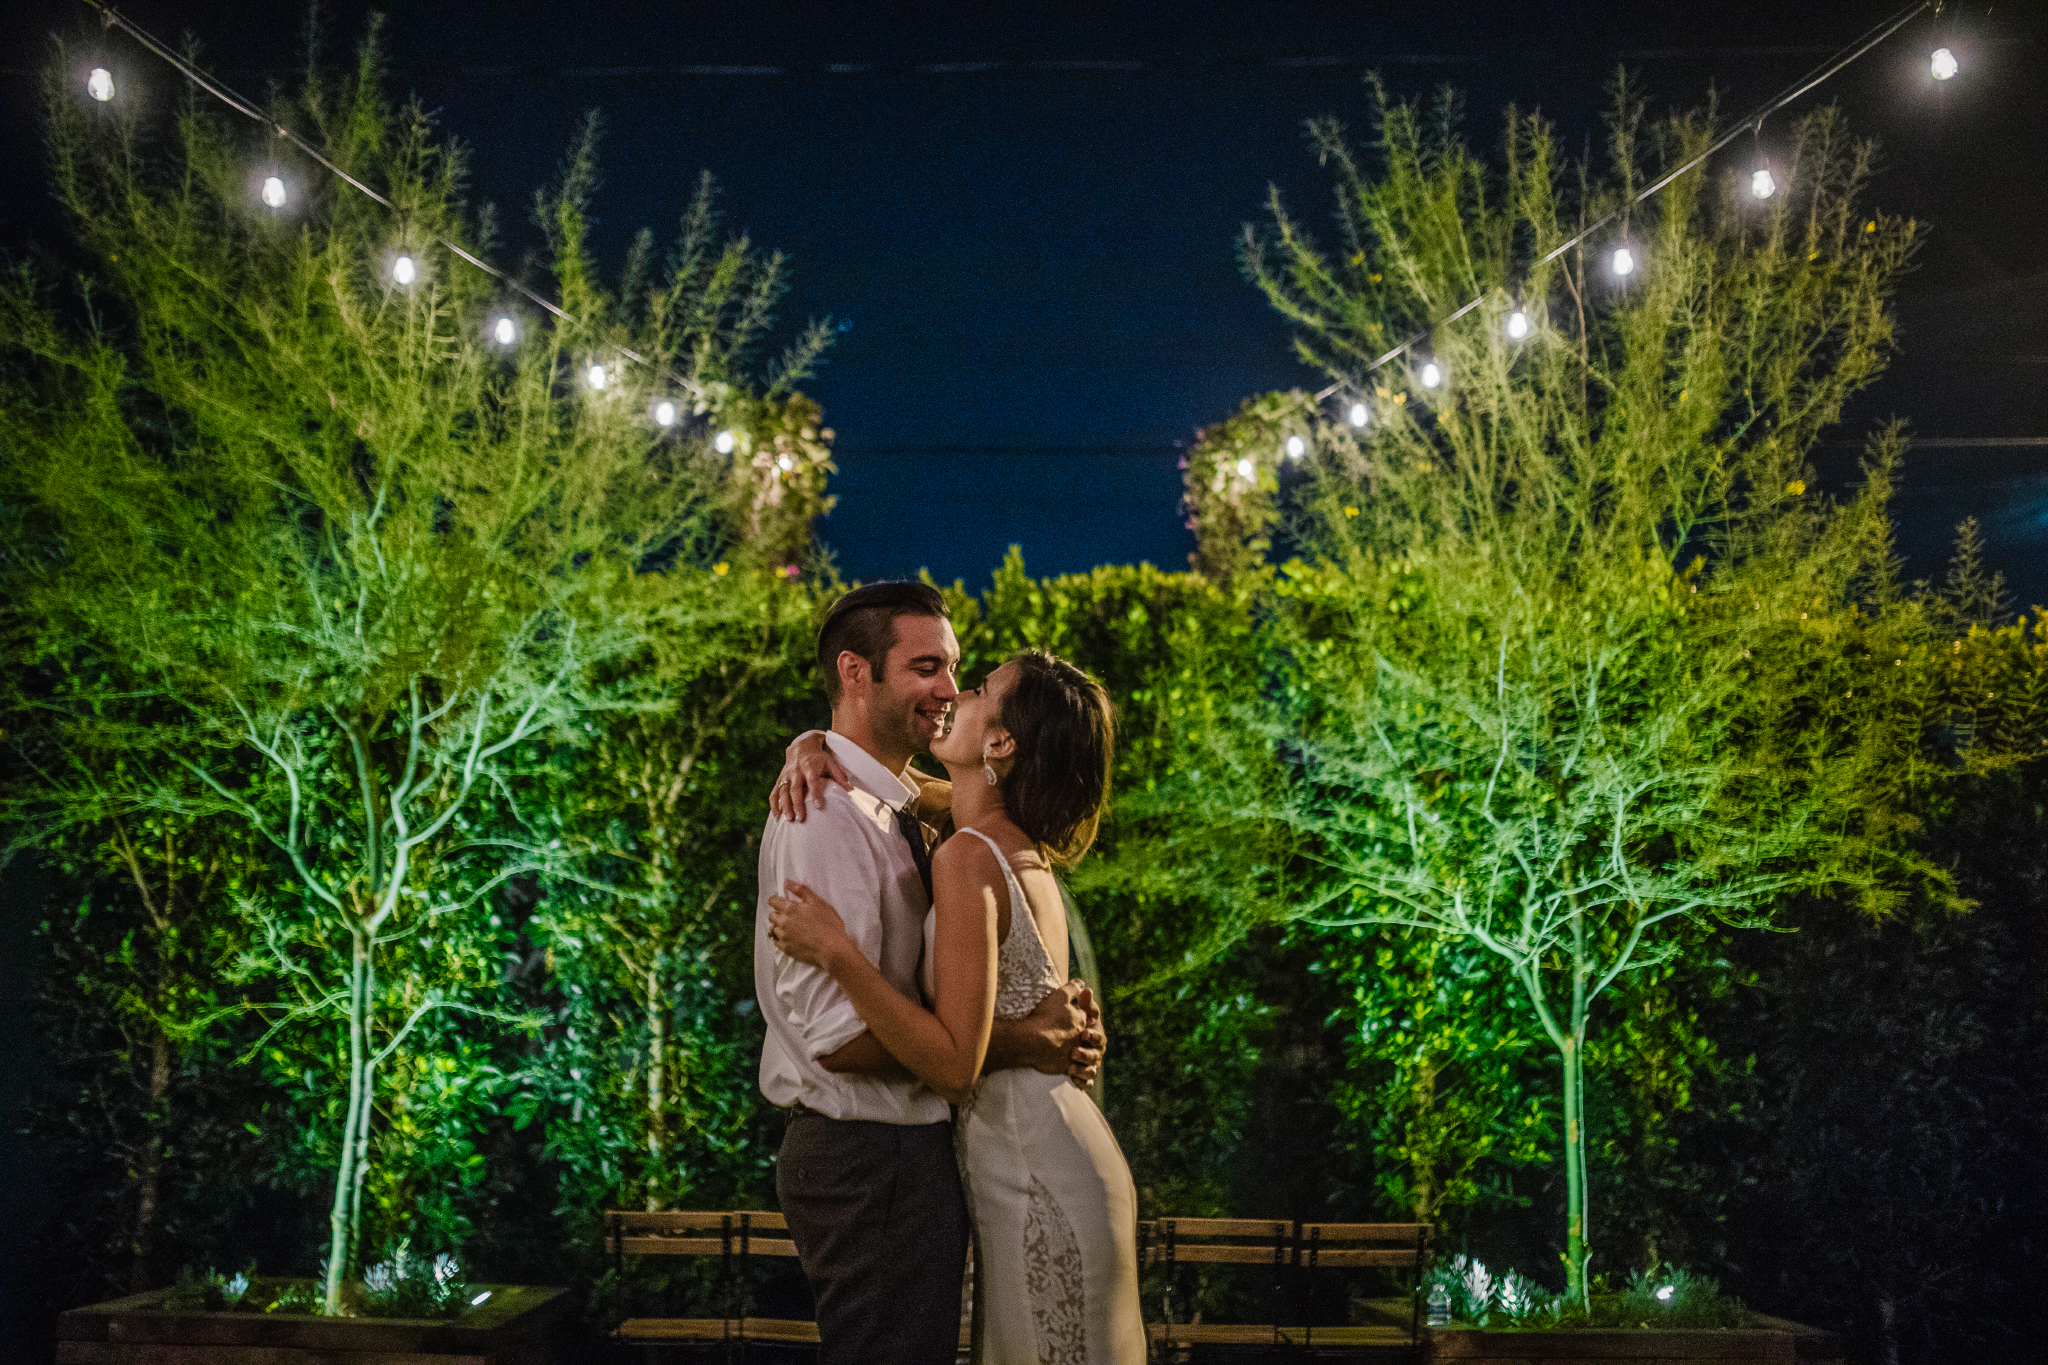 san diego wedding   photographer | couple in fron of bench and plants